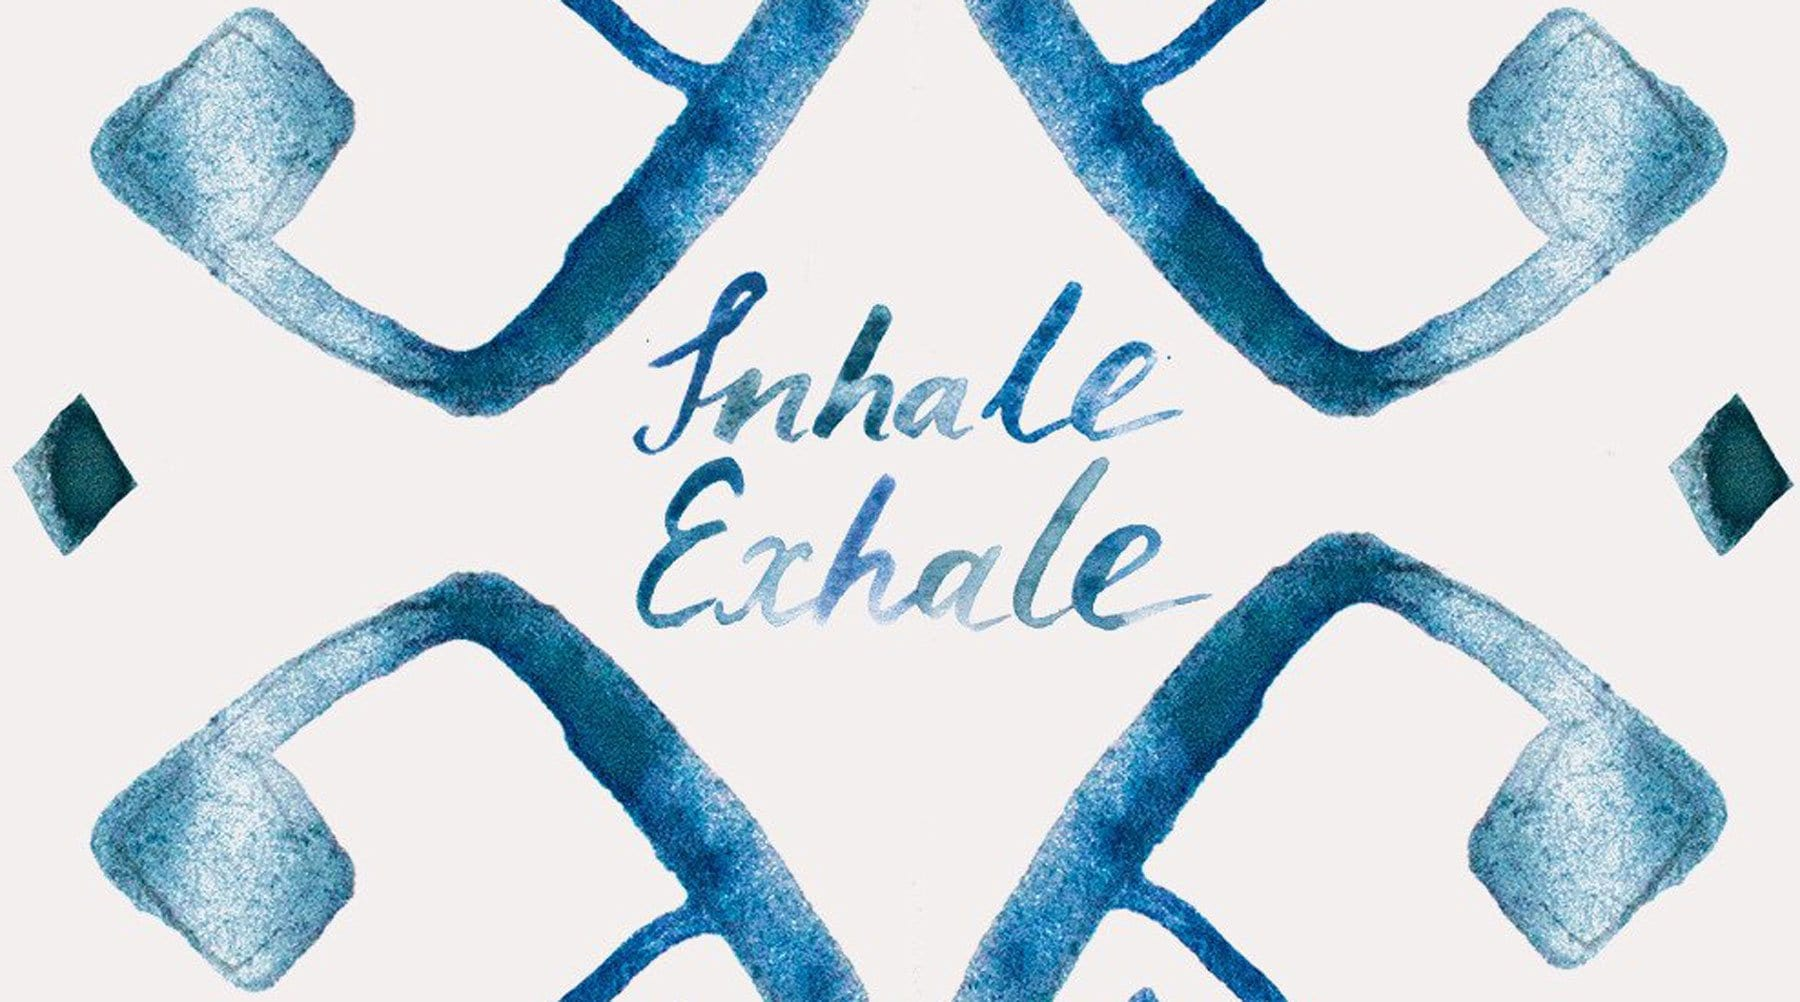 Inhale / Exhale - Free wallpaper download